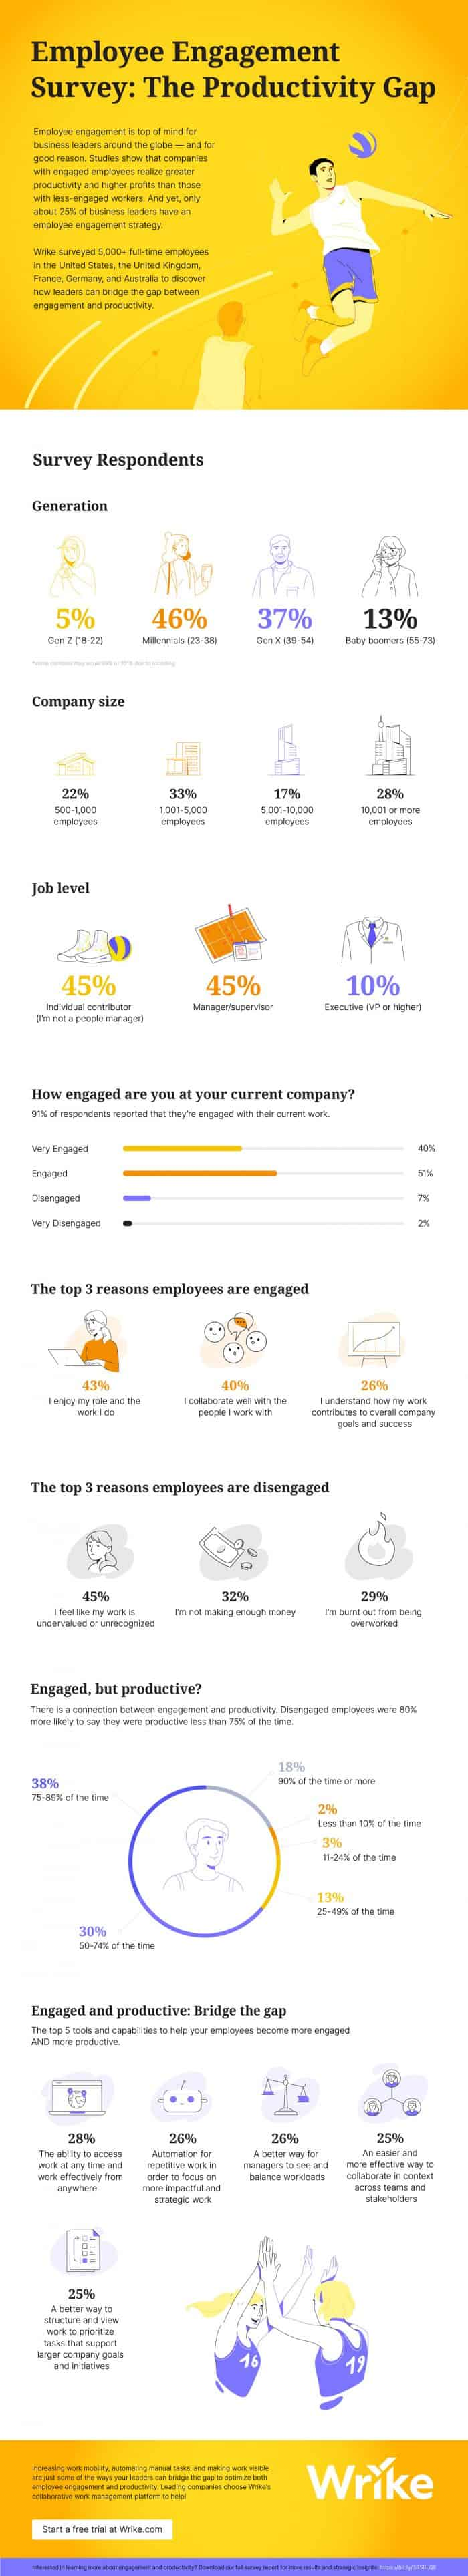 engagement-survey-infographic-1600-700x3856-1